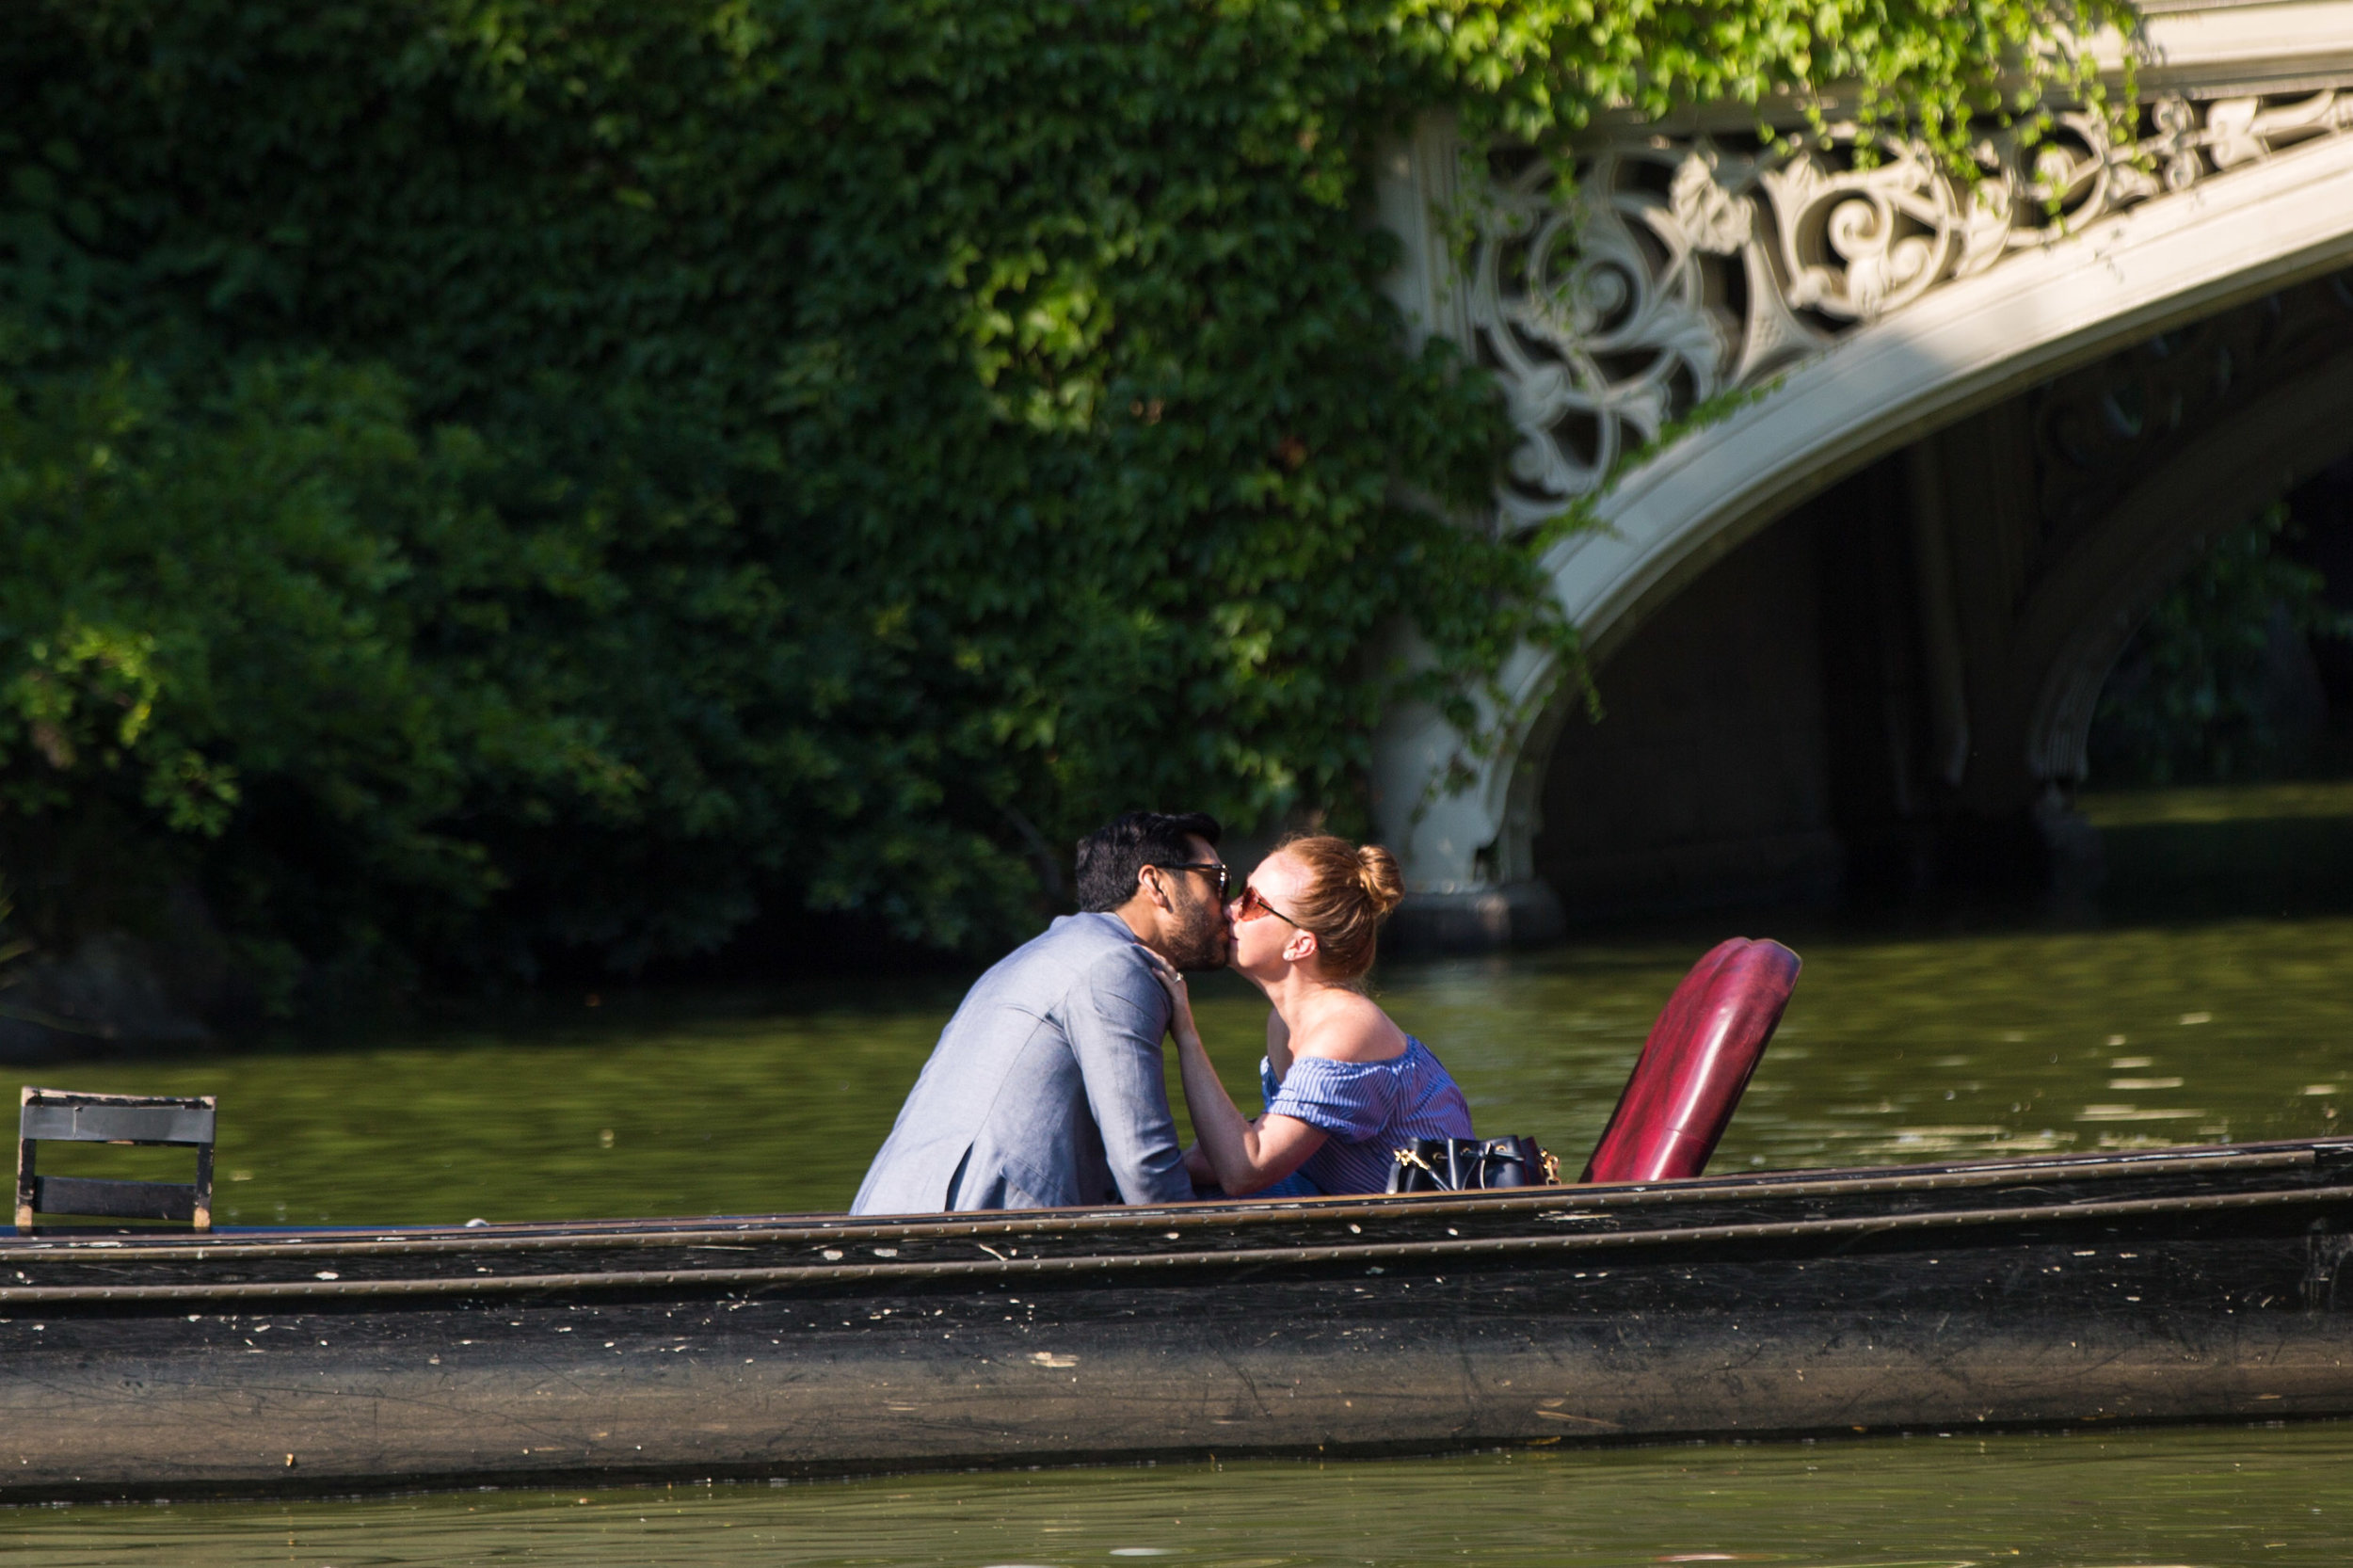 Central Park NYC Proposal Engagement Photo Shoot Session-5.jpg